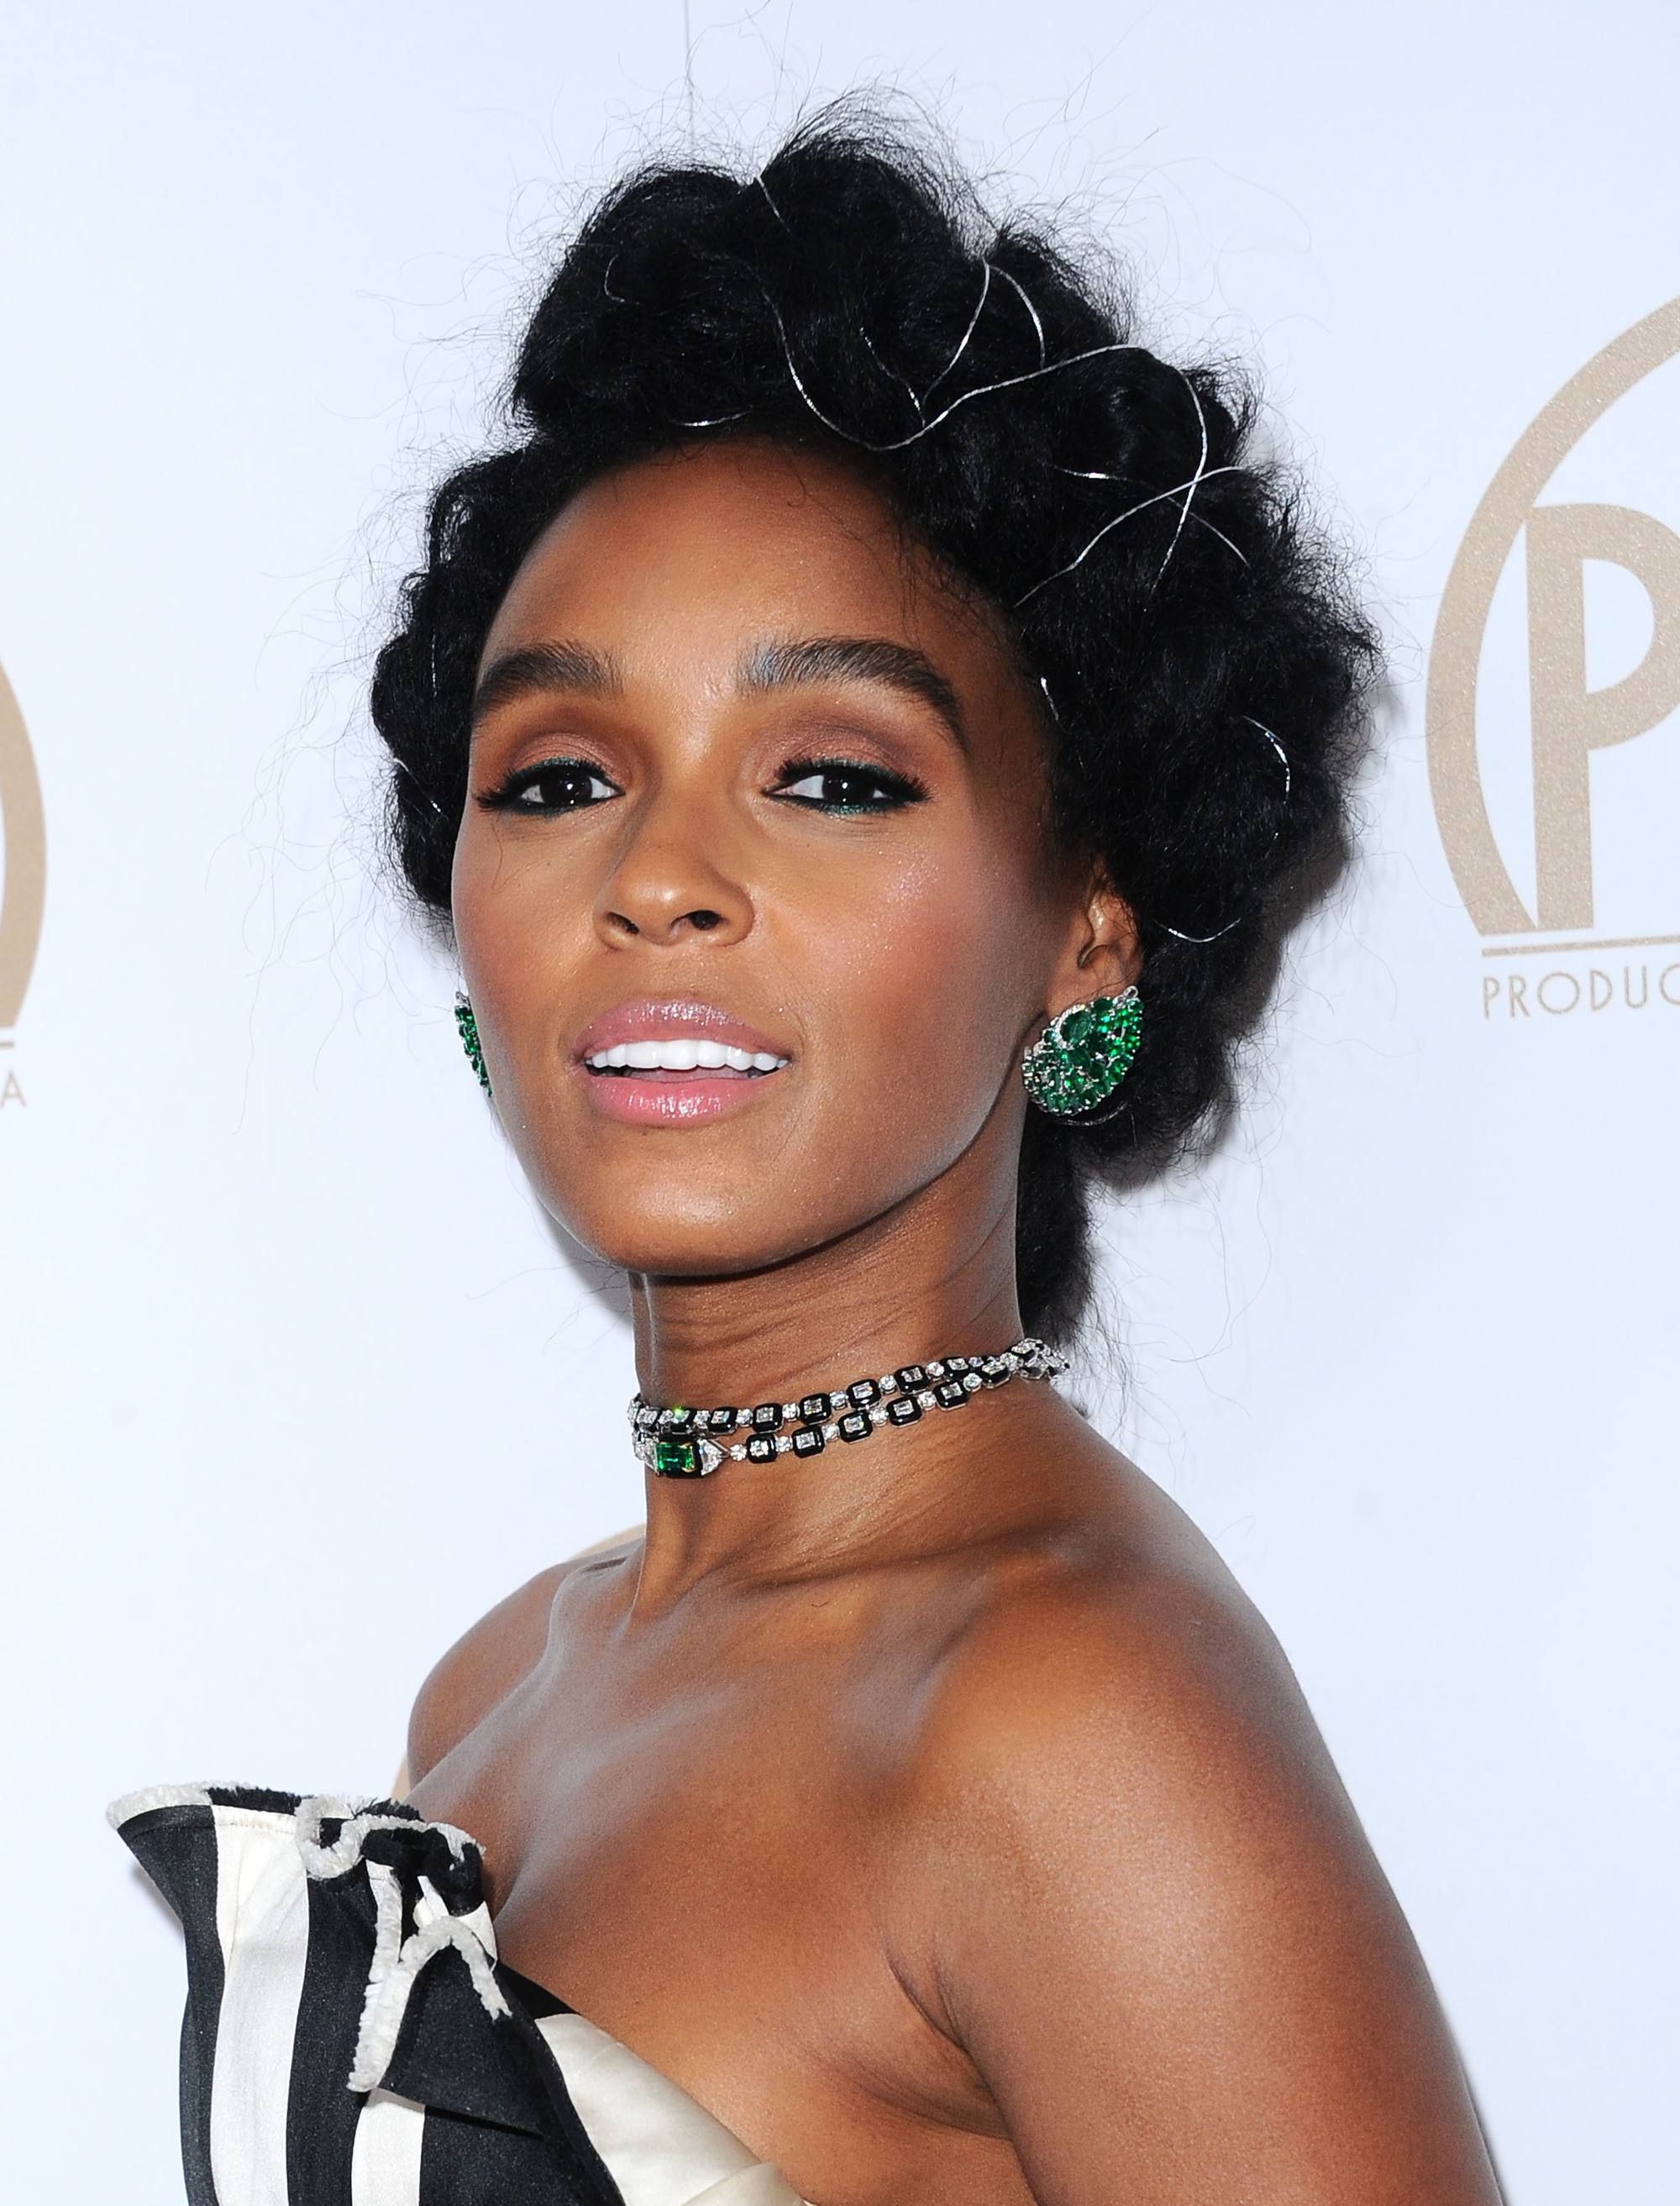 Curly hair hairstyles: Janelle Monae natural hair in halo braid updo on the red carpet wearing a strapless black and white dress